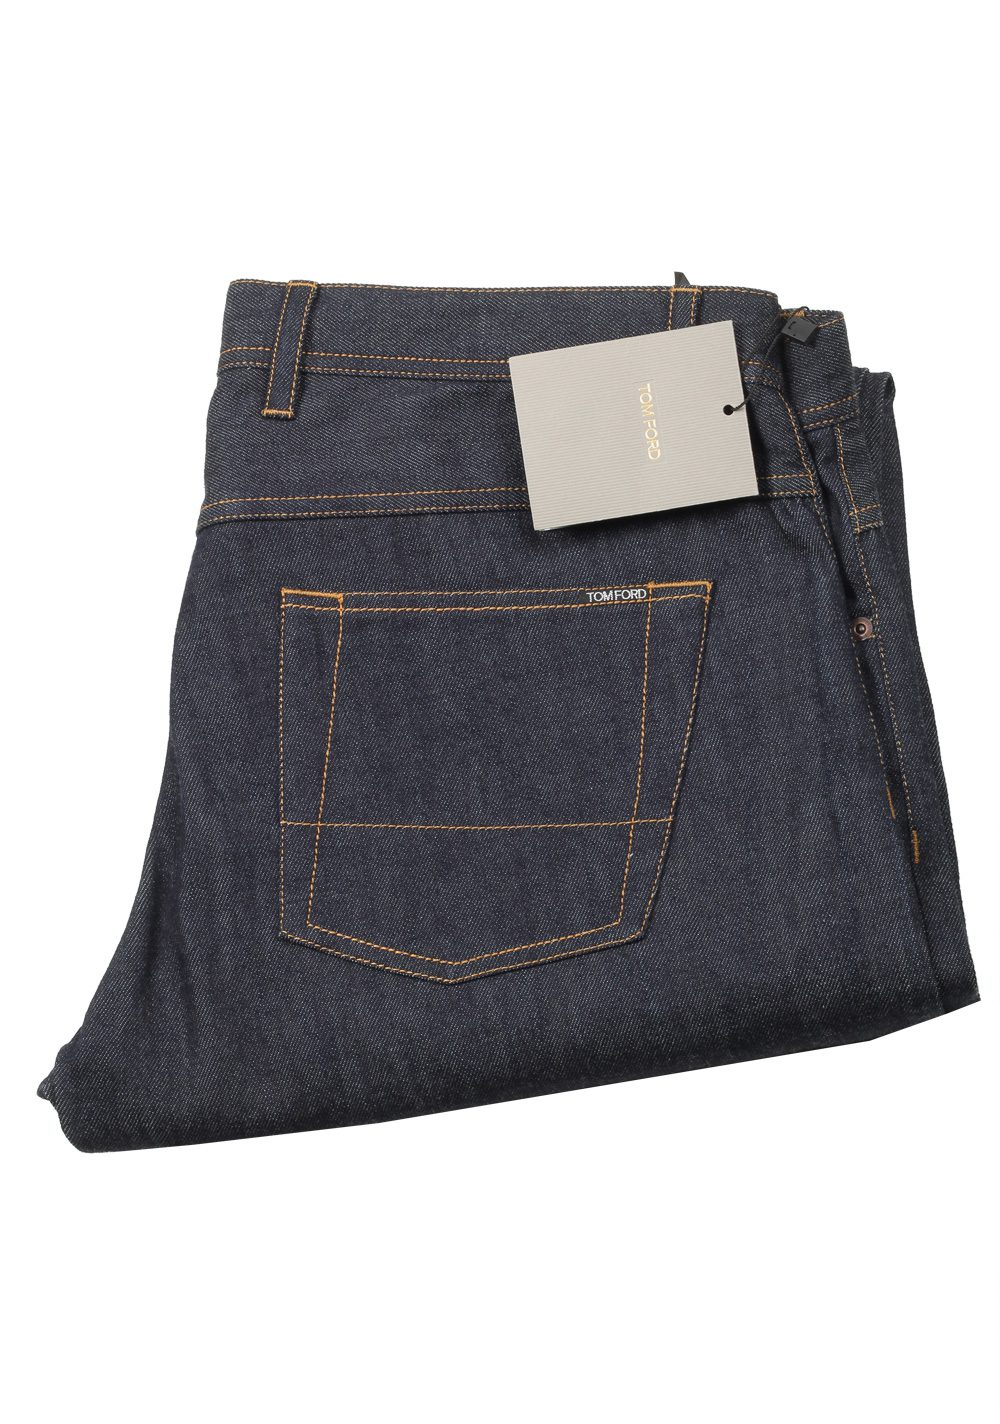 TOM FORD Blue Straight Jeans TFD003 Size 54 / 38 U.S. | Costume Limité